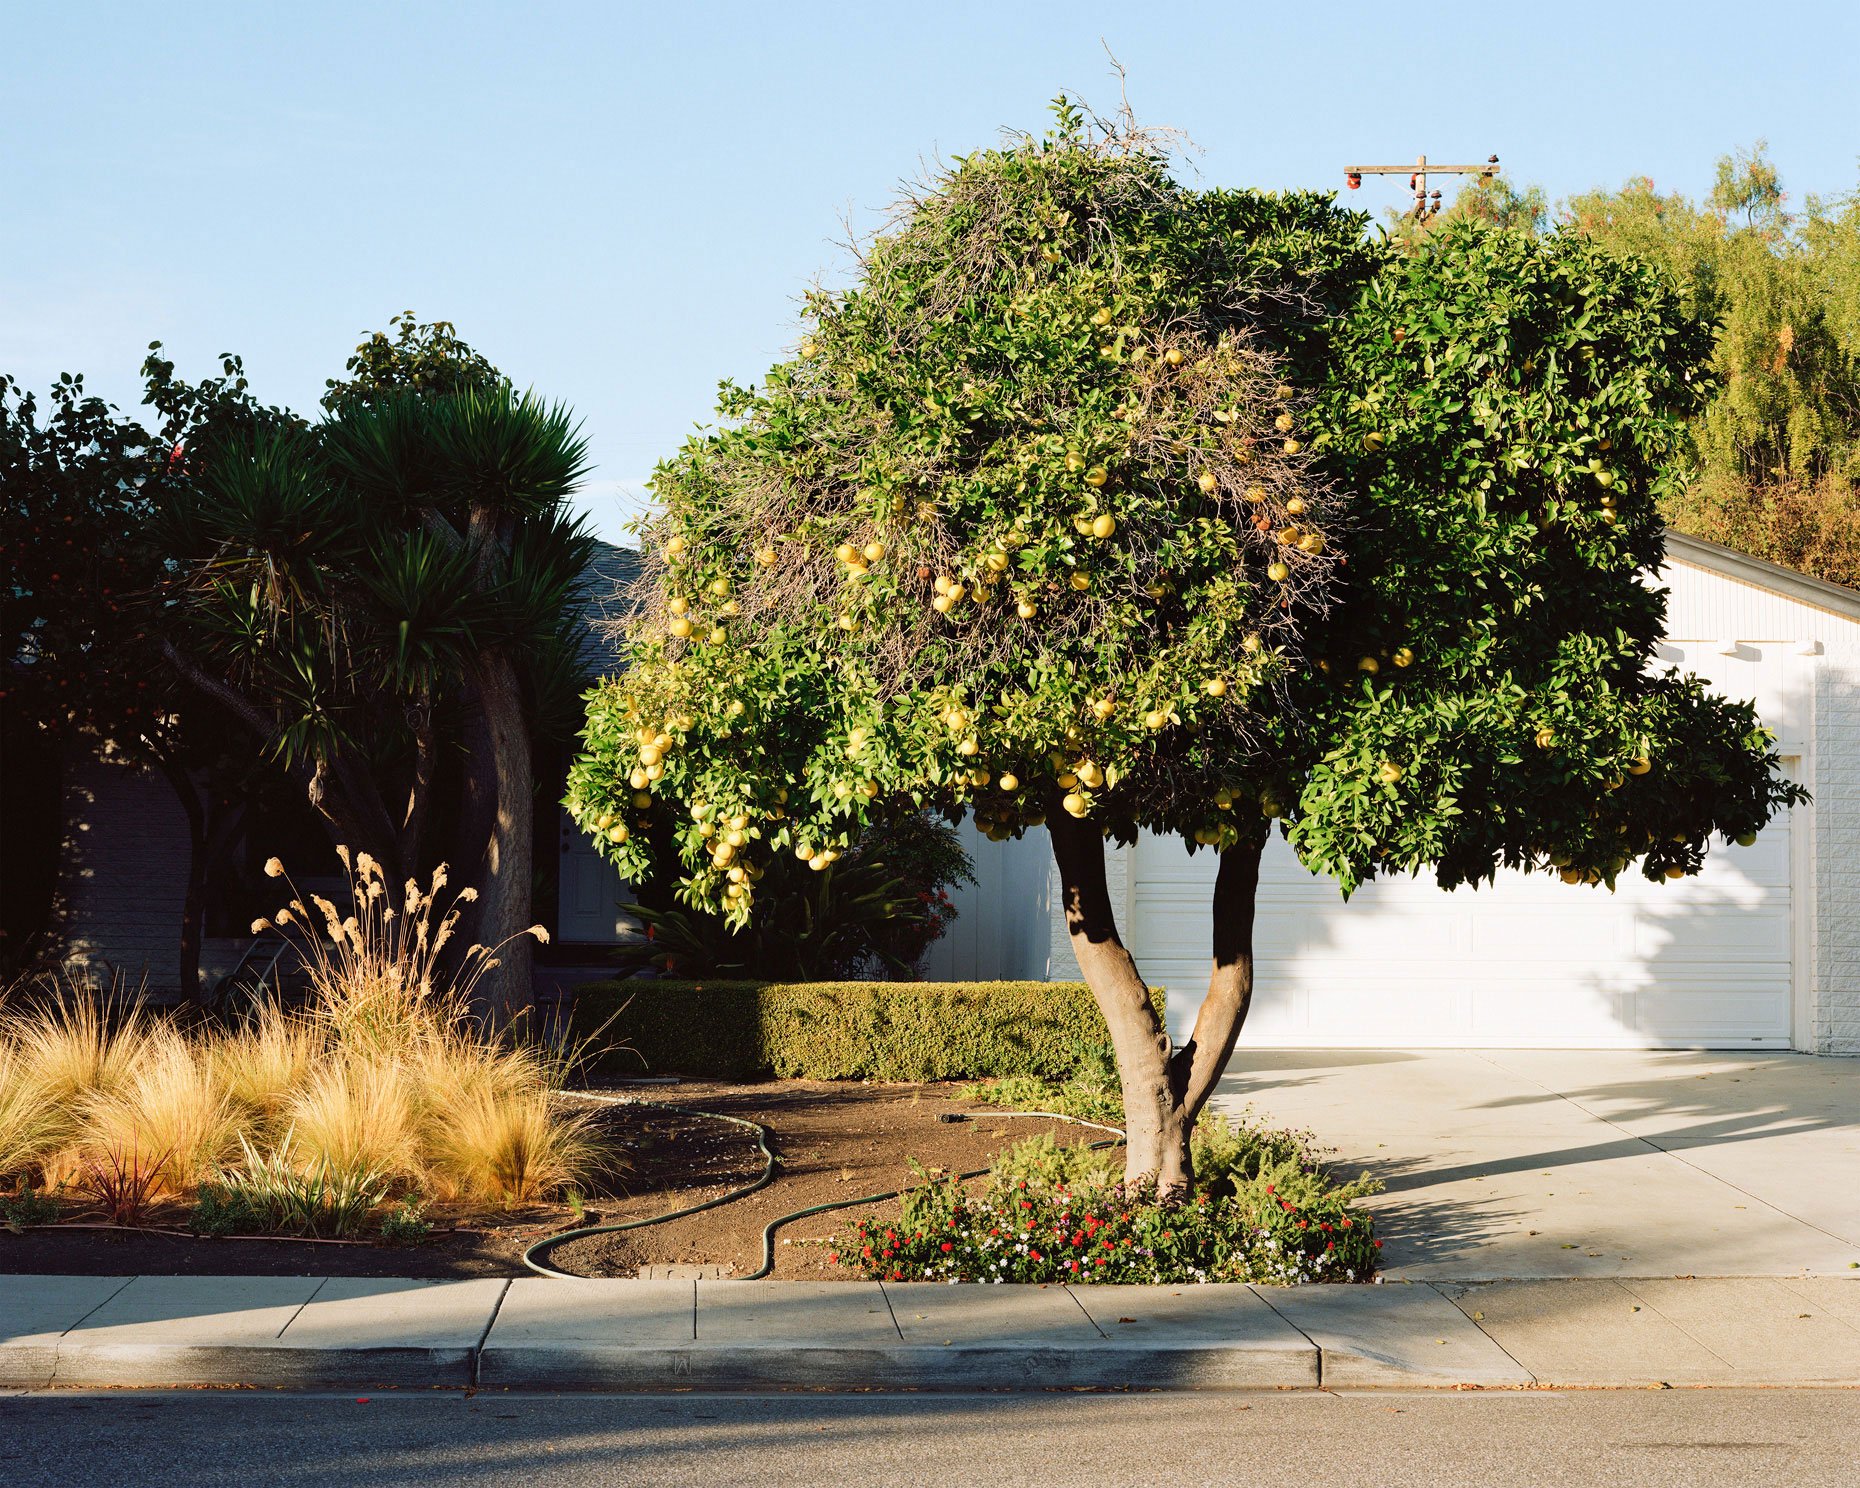 Grapefruit Tree  |  California  |  Michael Gaillard